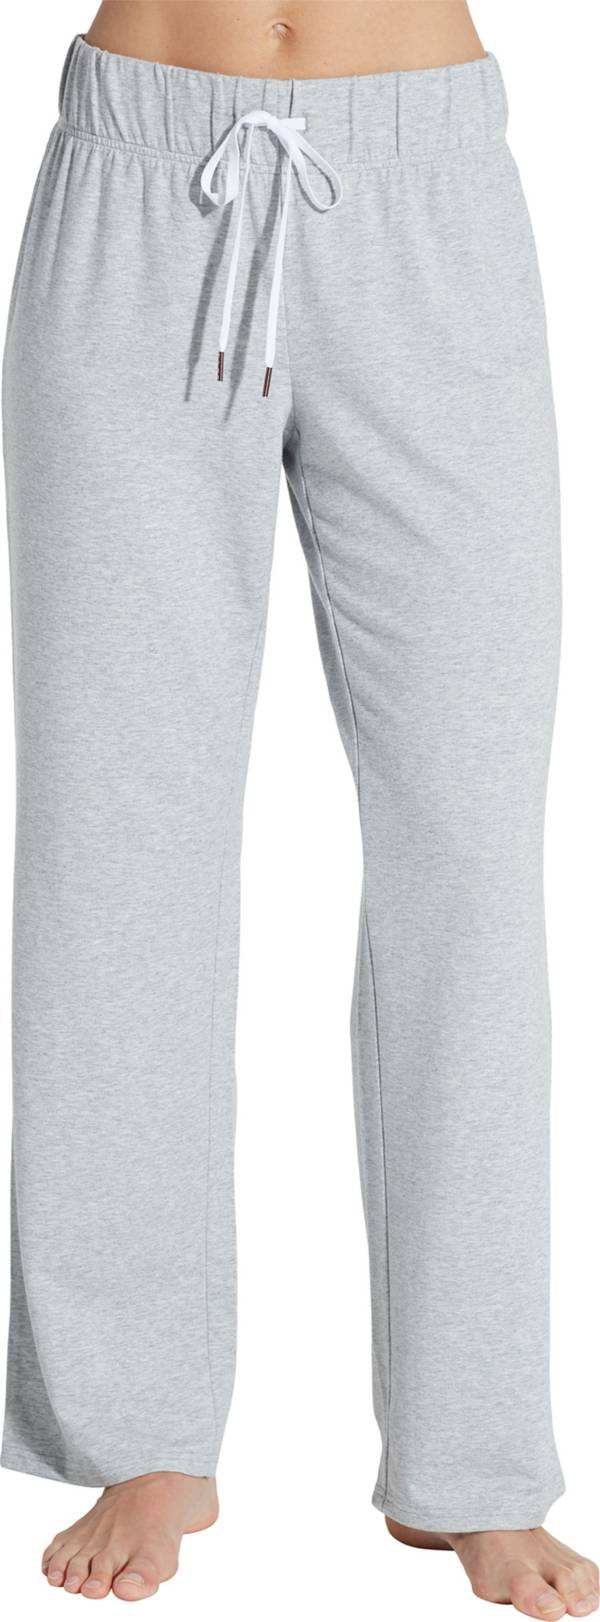 CALIA by Carrie Underwood Women's Effortless Drawstring Pants product image